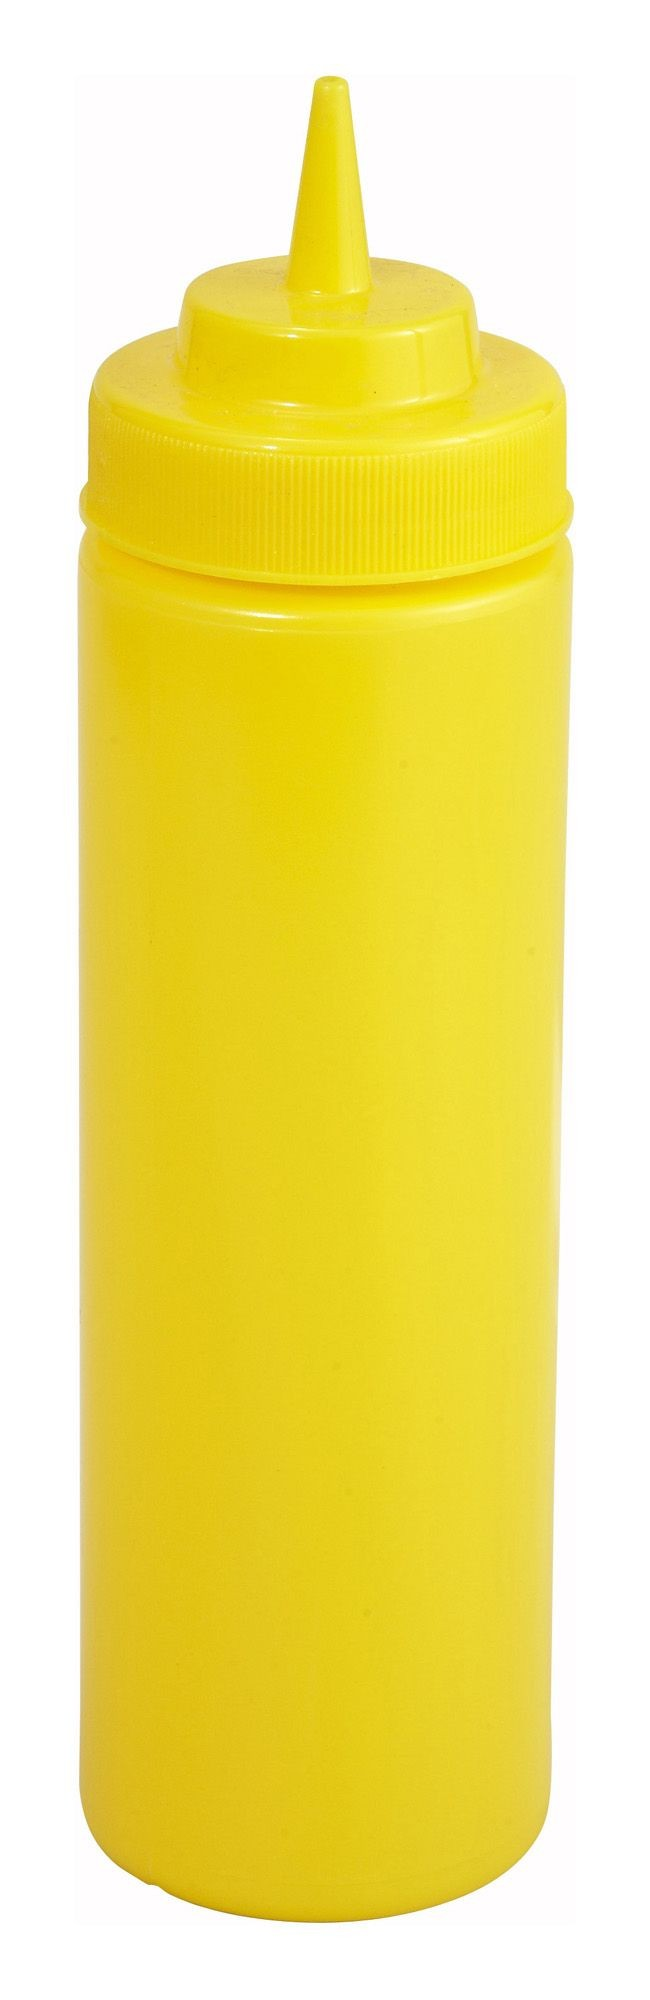 Yellow Plastic 16 Oz. Wide-Mouth Squeeze Bottle